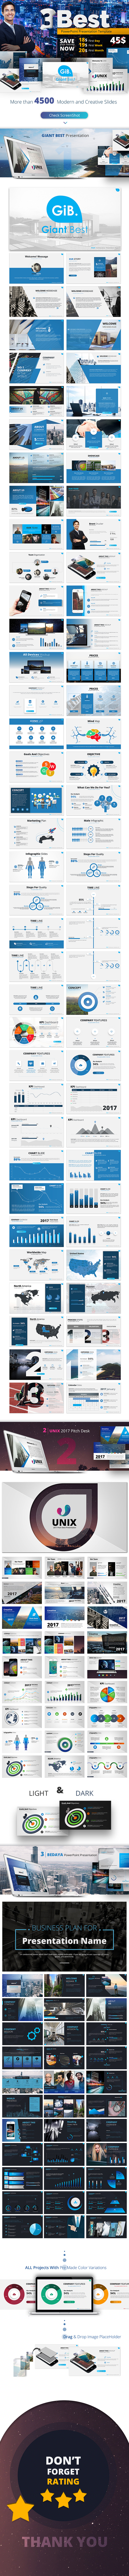 3 Best PowerPoint Template in 1 - Business PowerPoint Templates